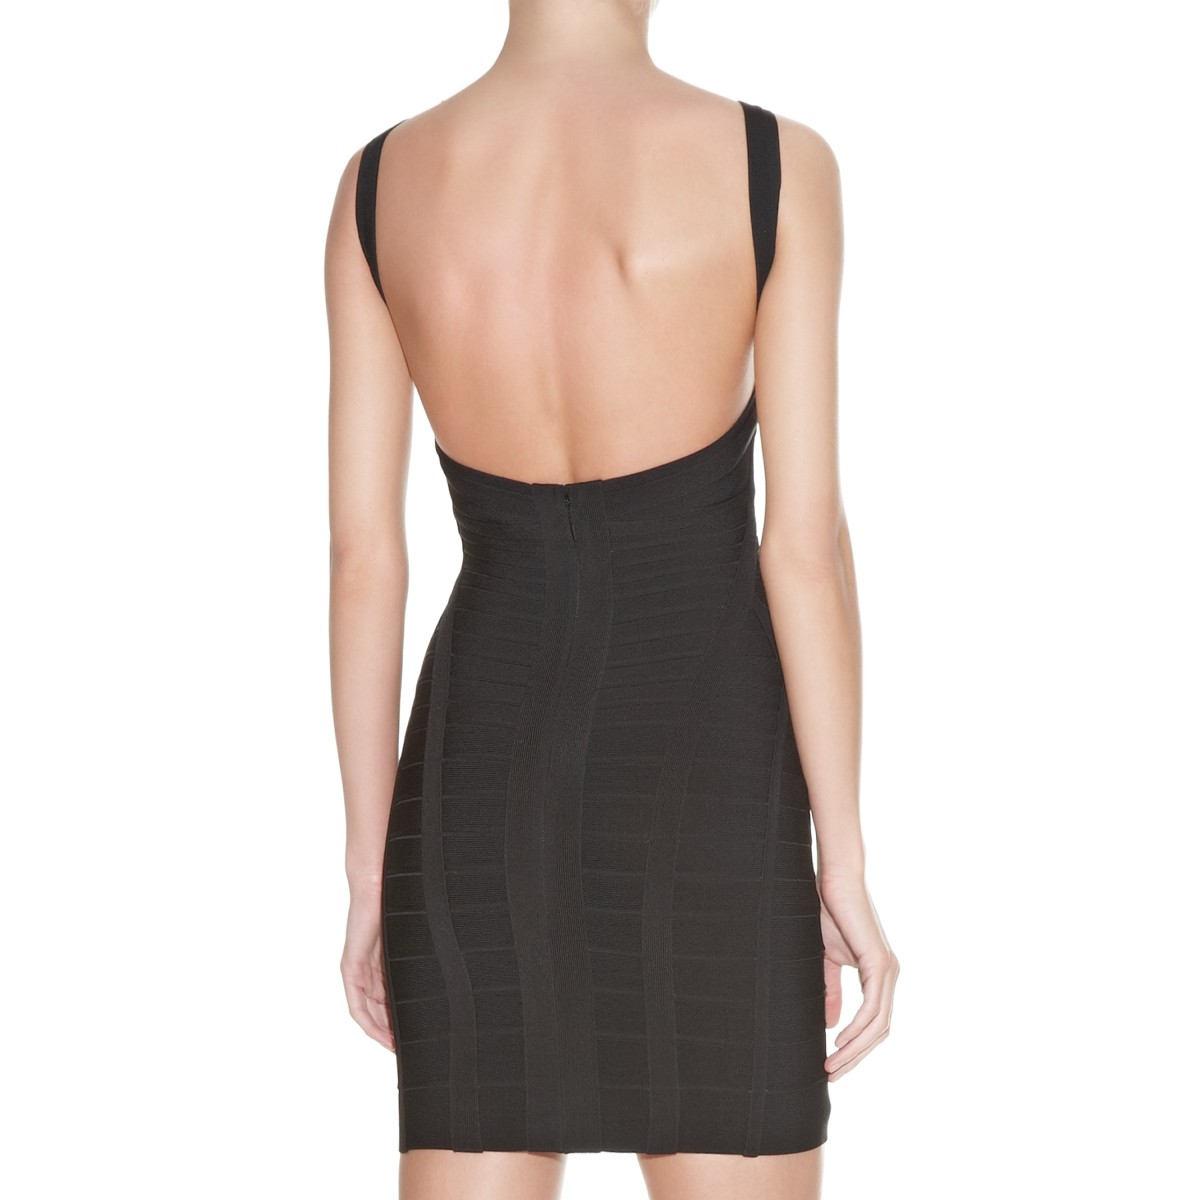 Herve Leger Nadya Bandage Dress